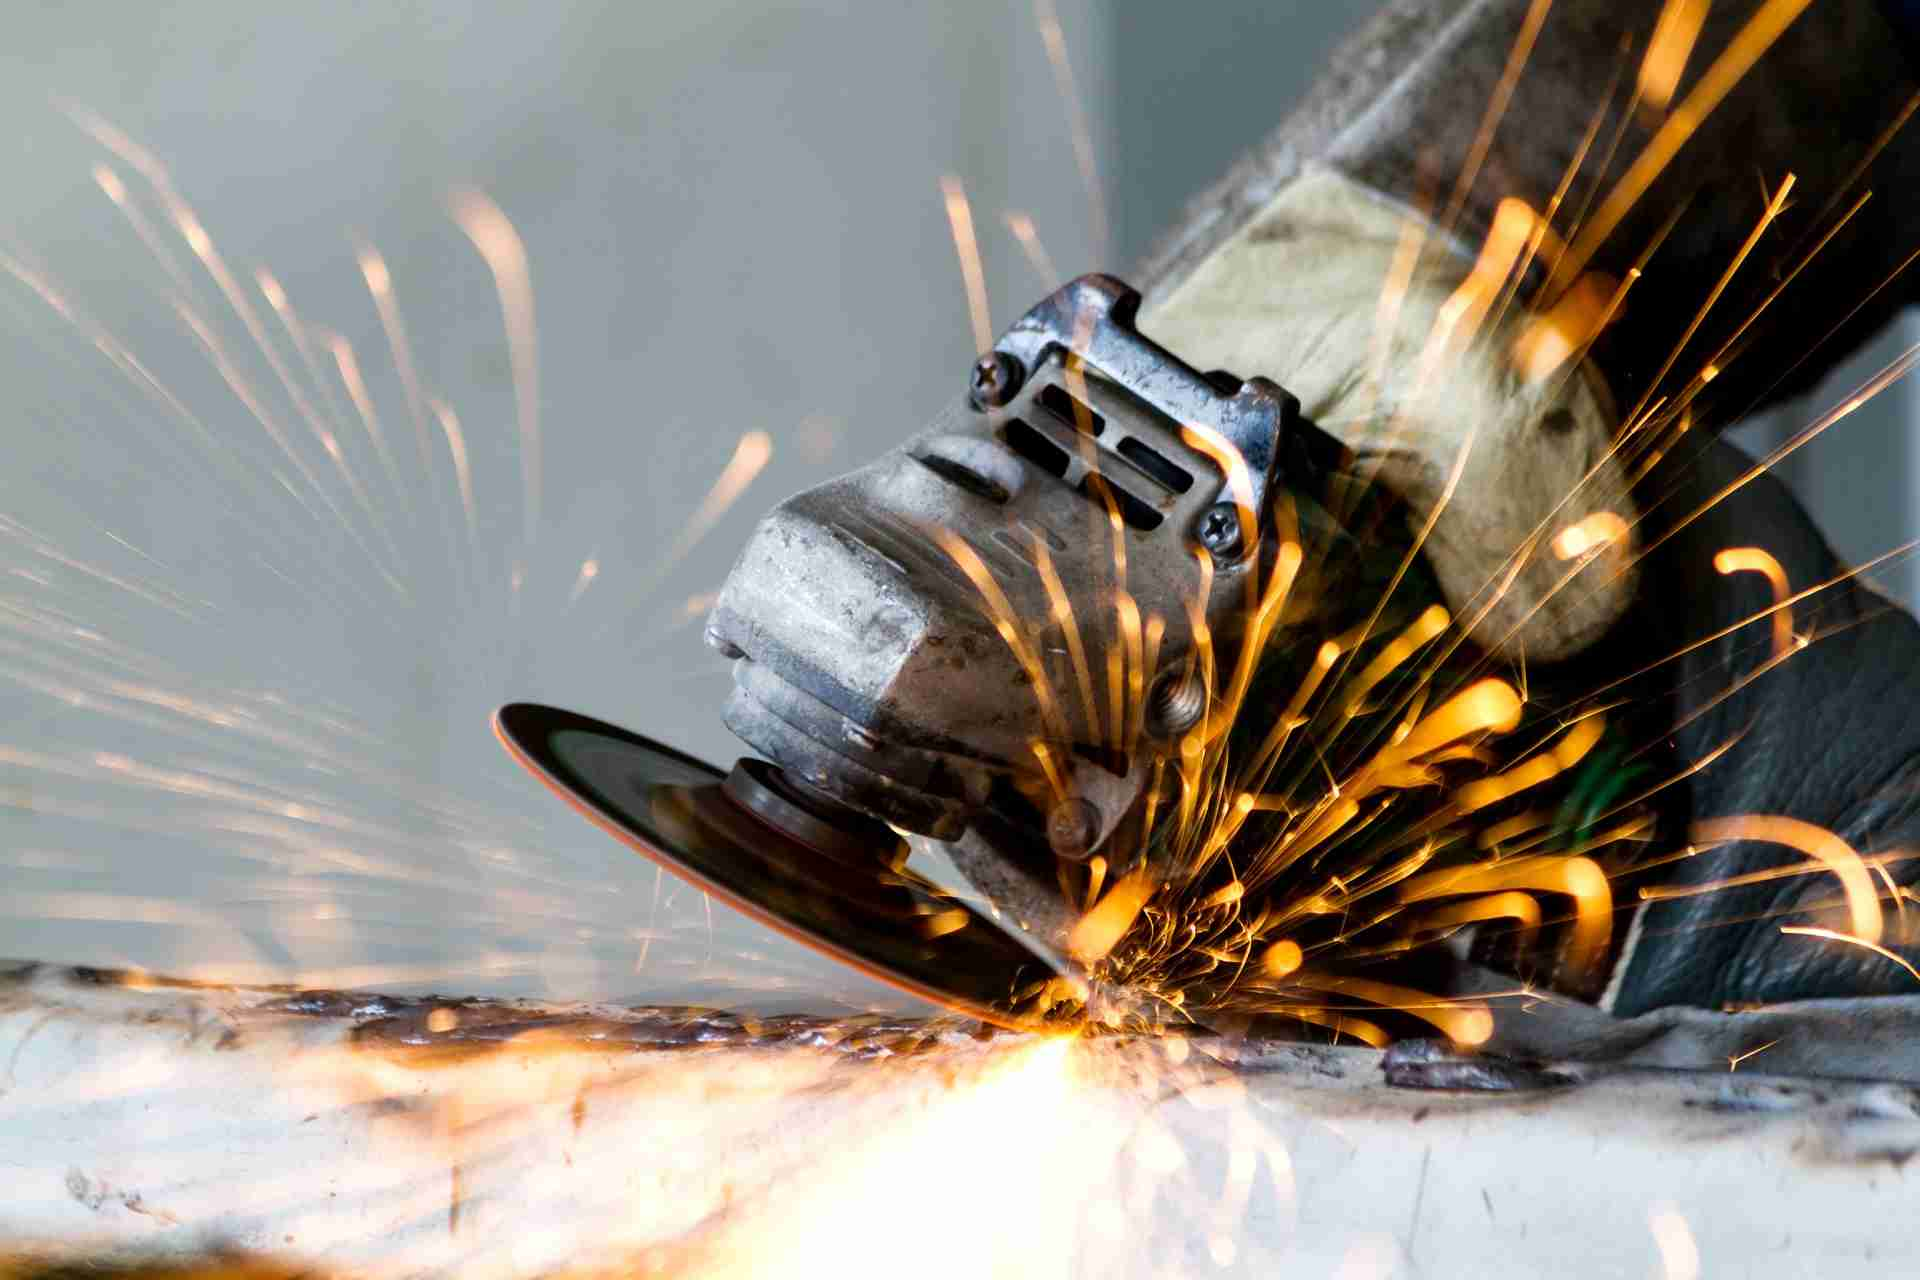 zoomed in view of a power tool welding with sparks flying